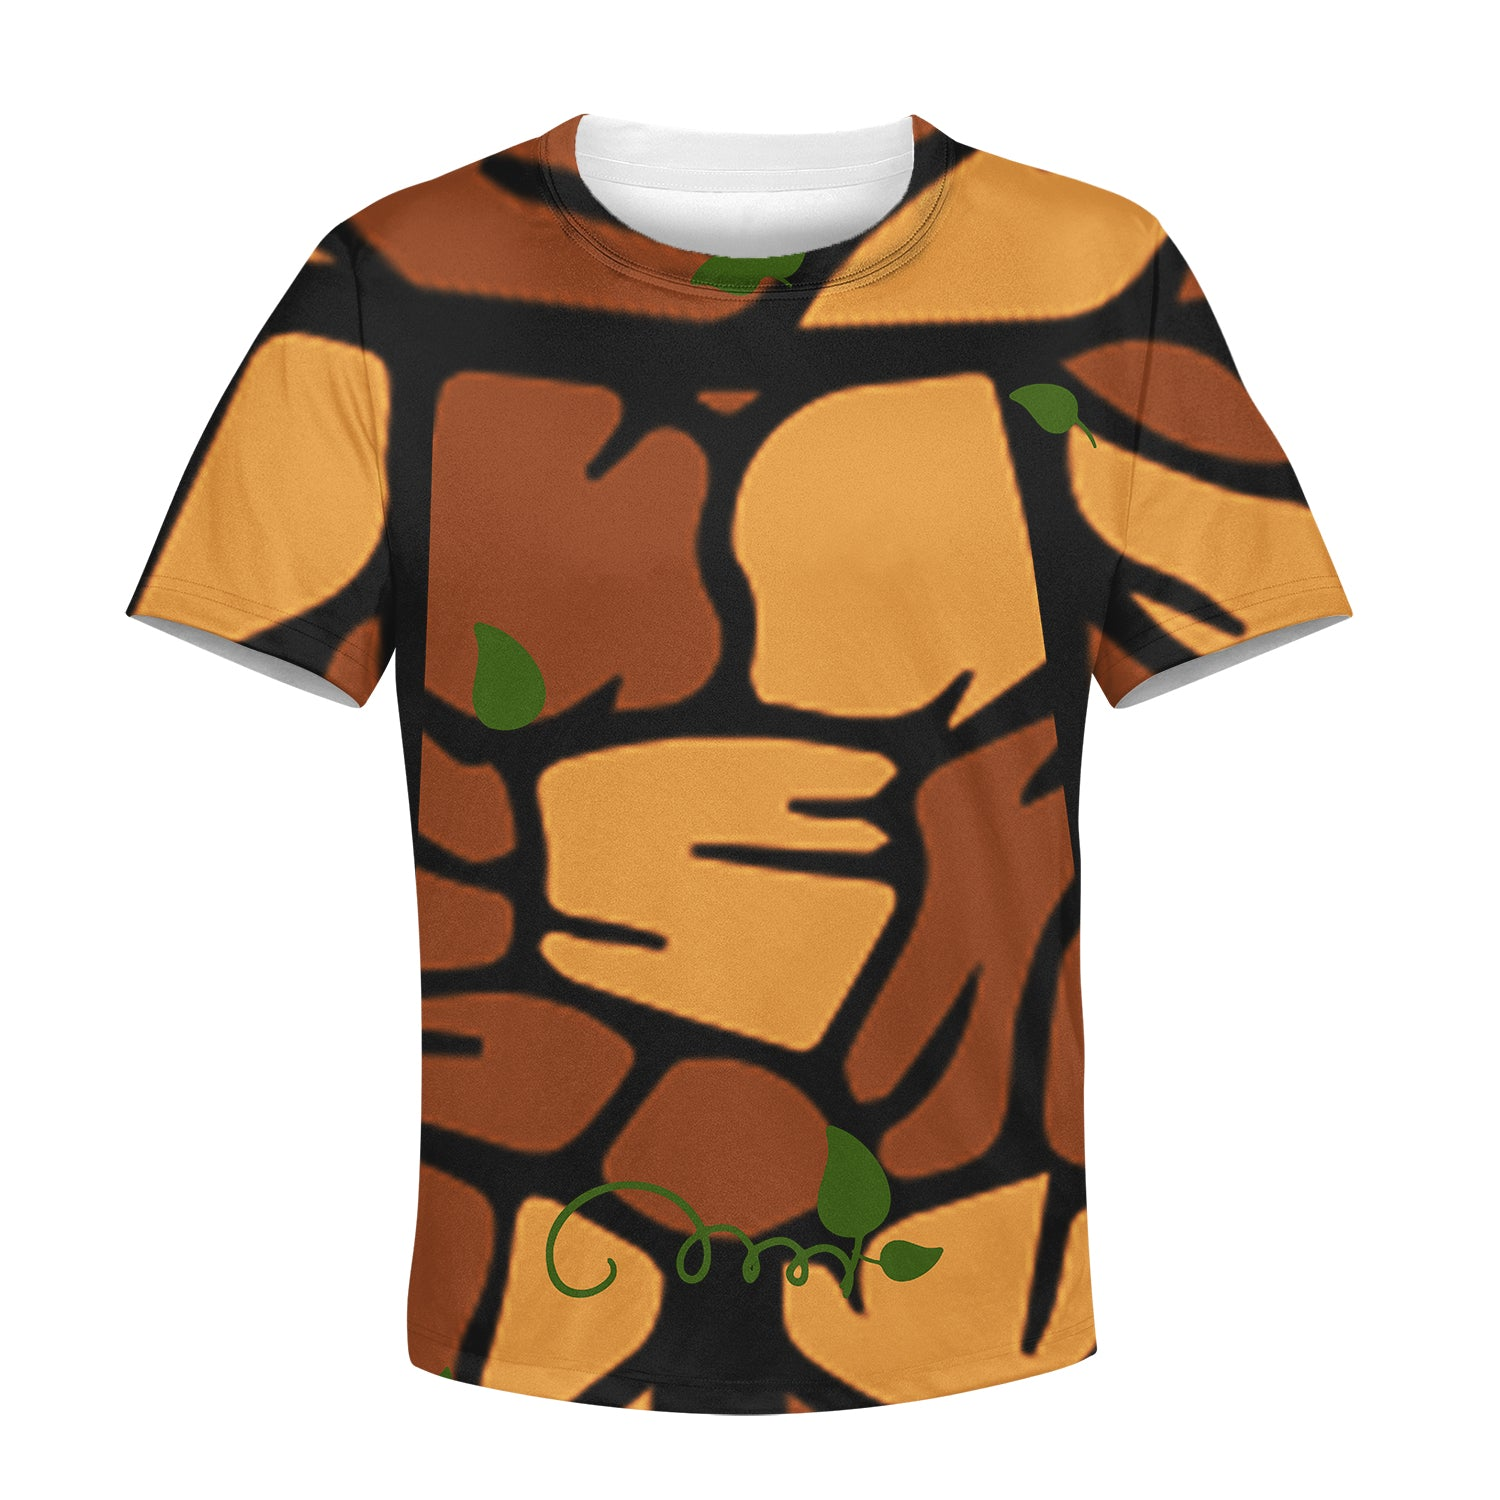 Beautiful 3D All Over Printed Groot Clothes For Kids